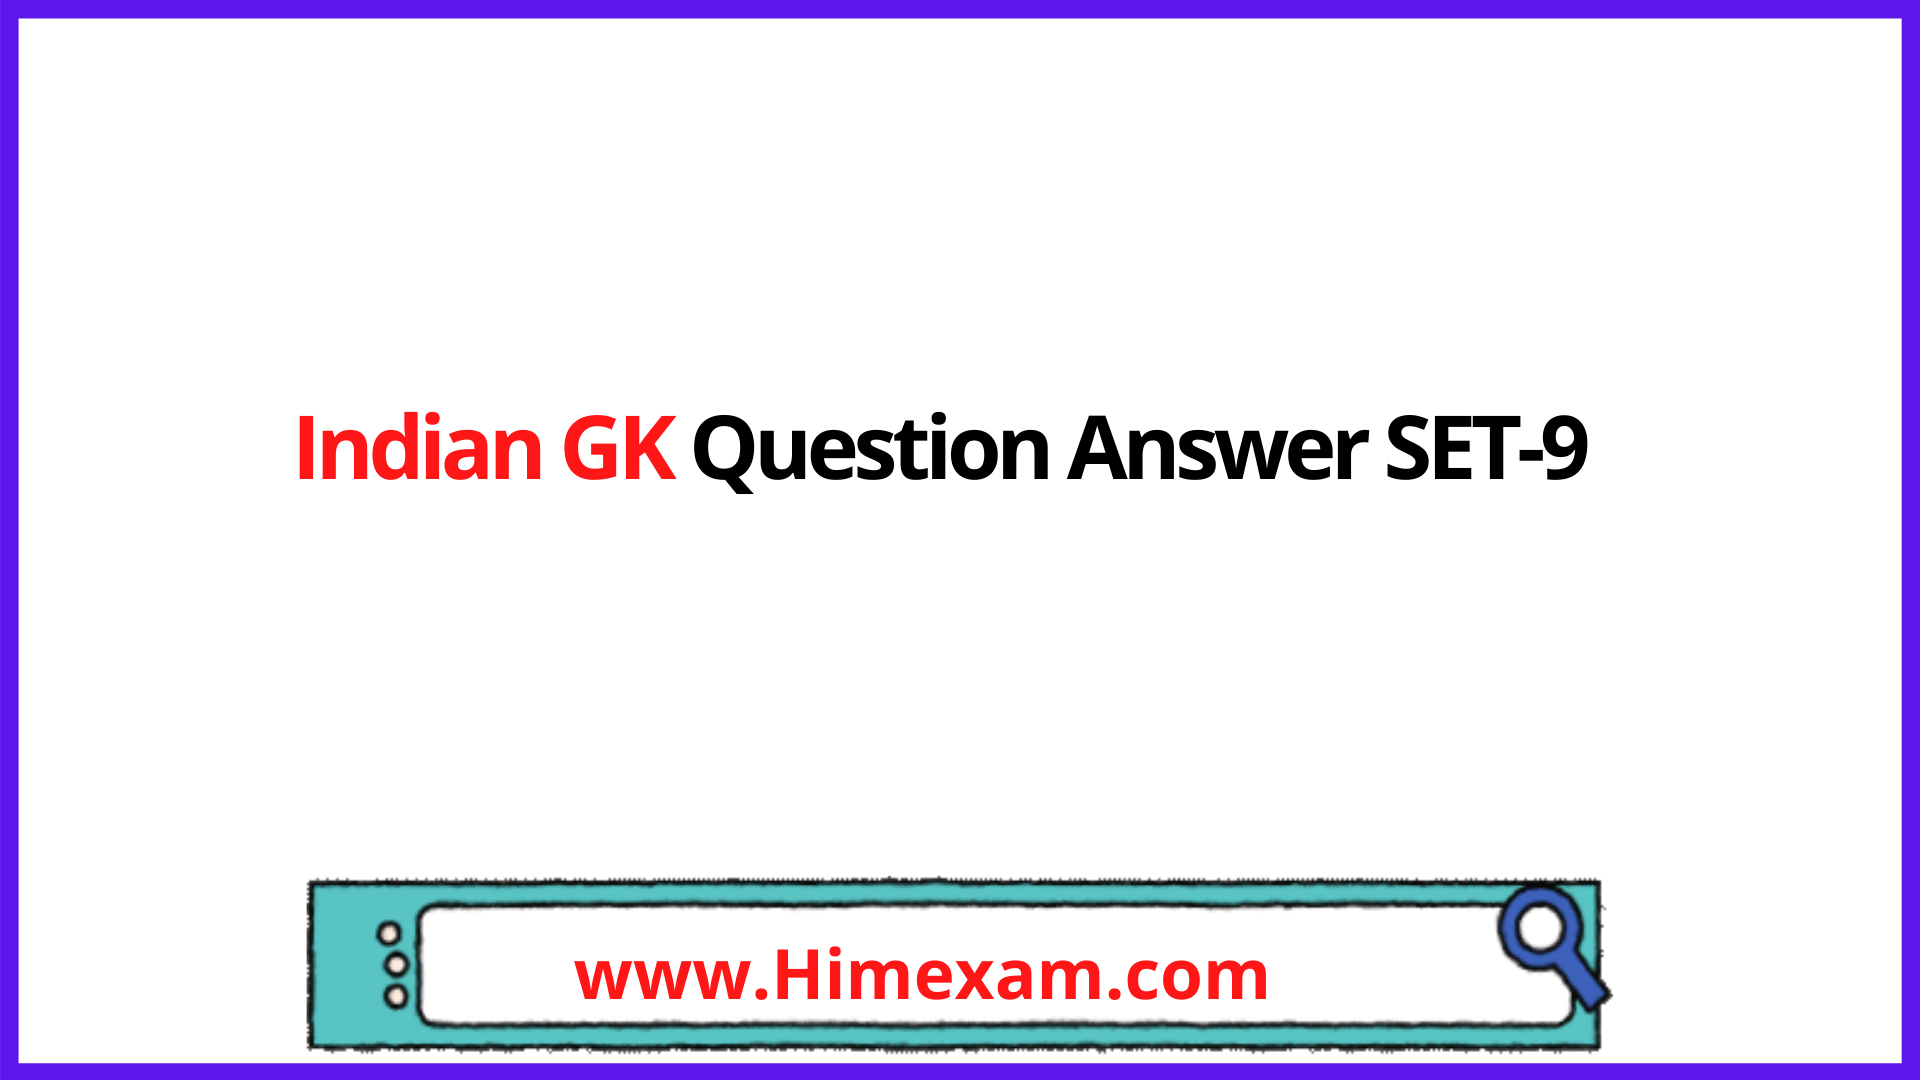 Indian GK Question Answer SET-9